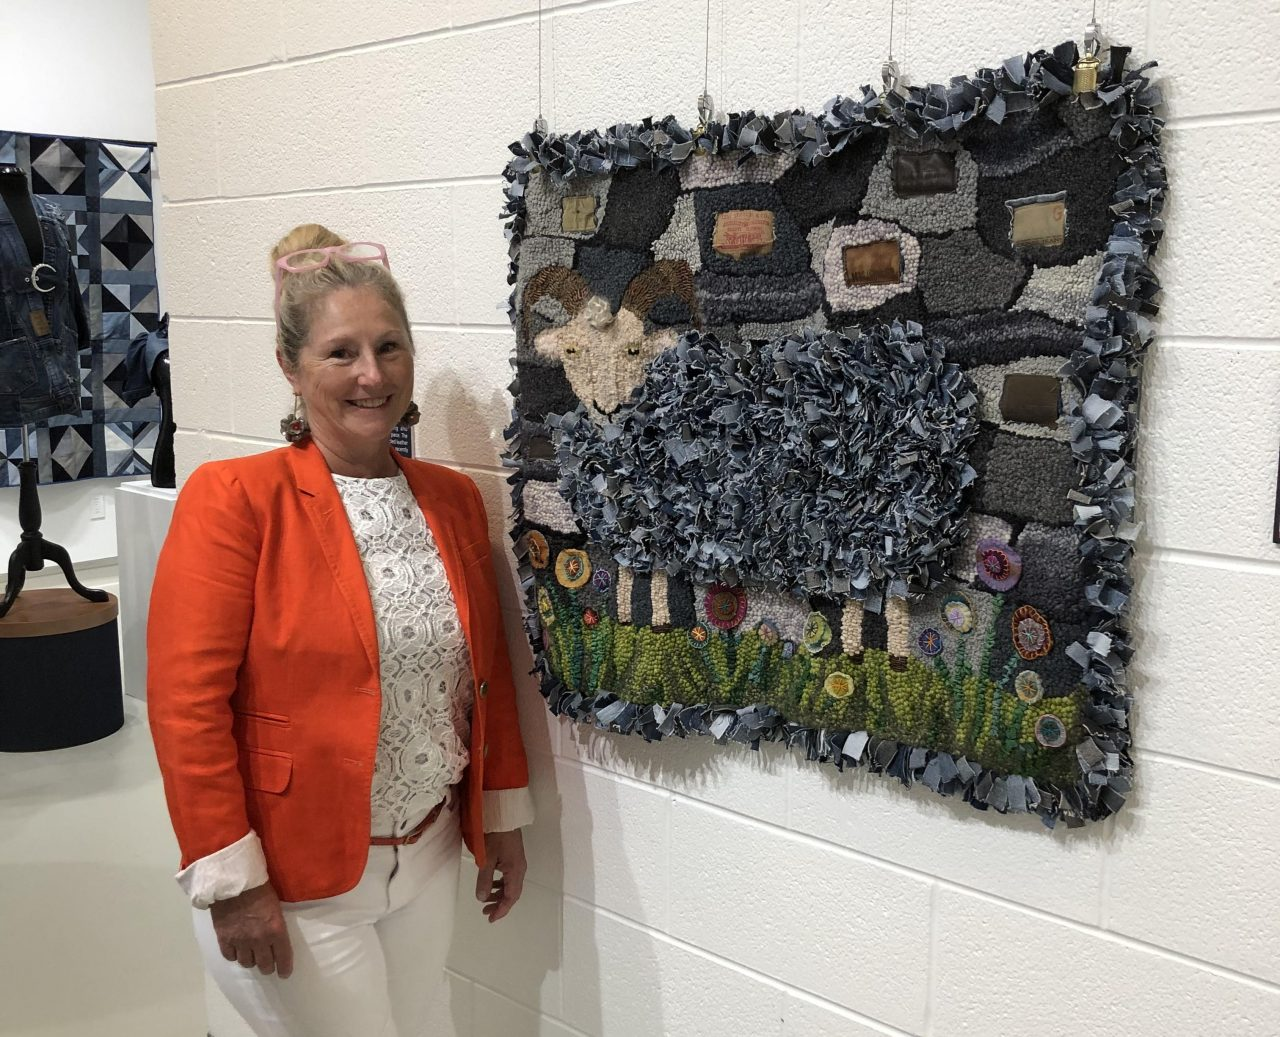 Artist Yvonne Iten-Scott standing by her textile art of a sheep made from denim scraps in a white gallery